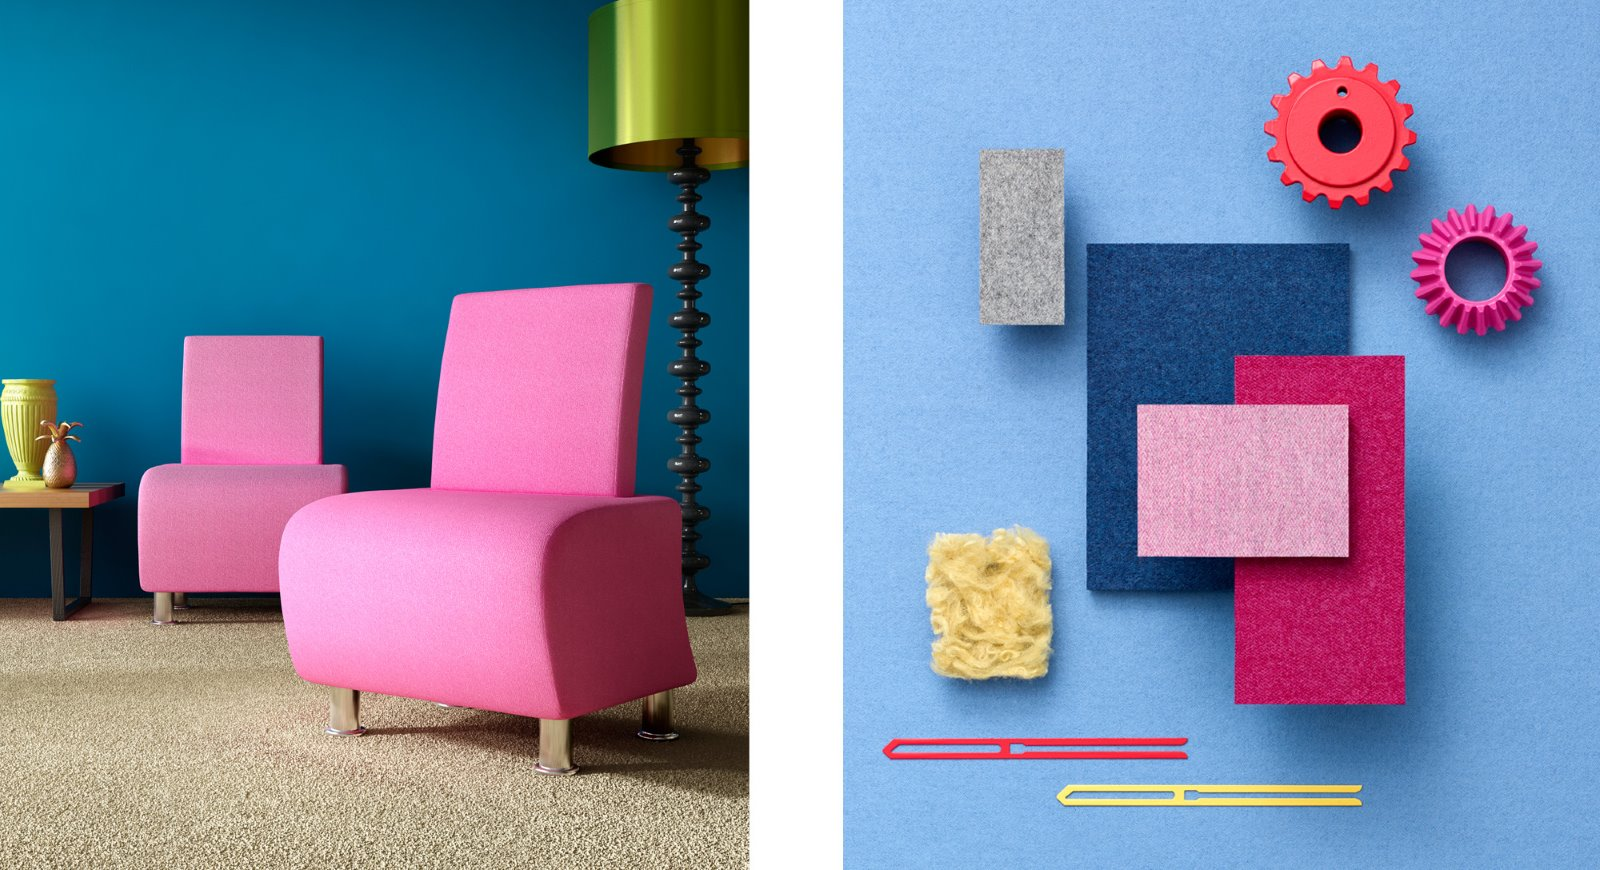 contrasting colours block shape interior design